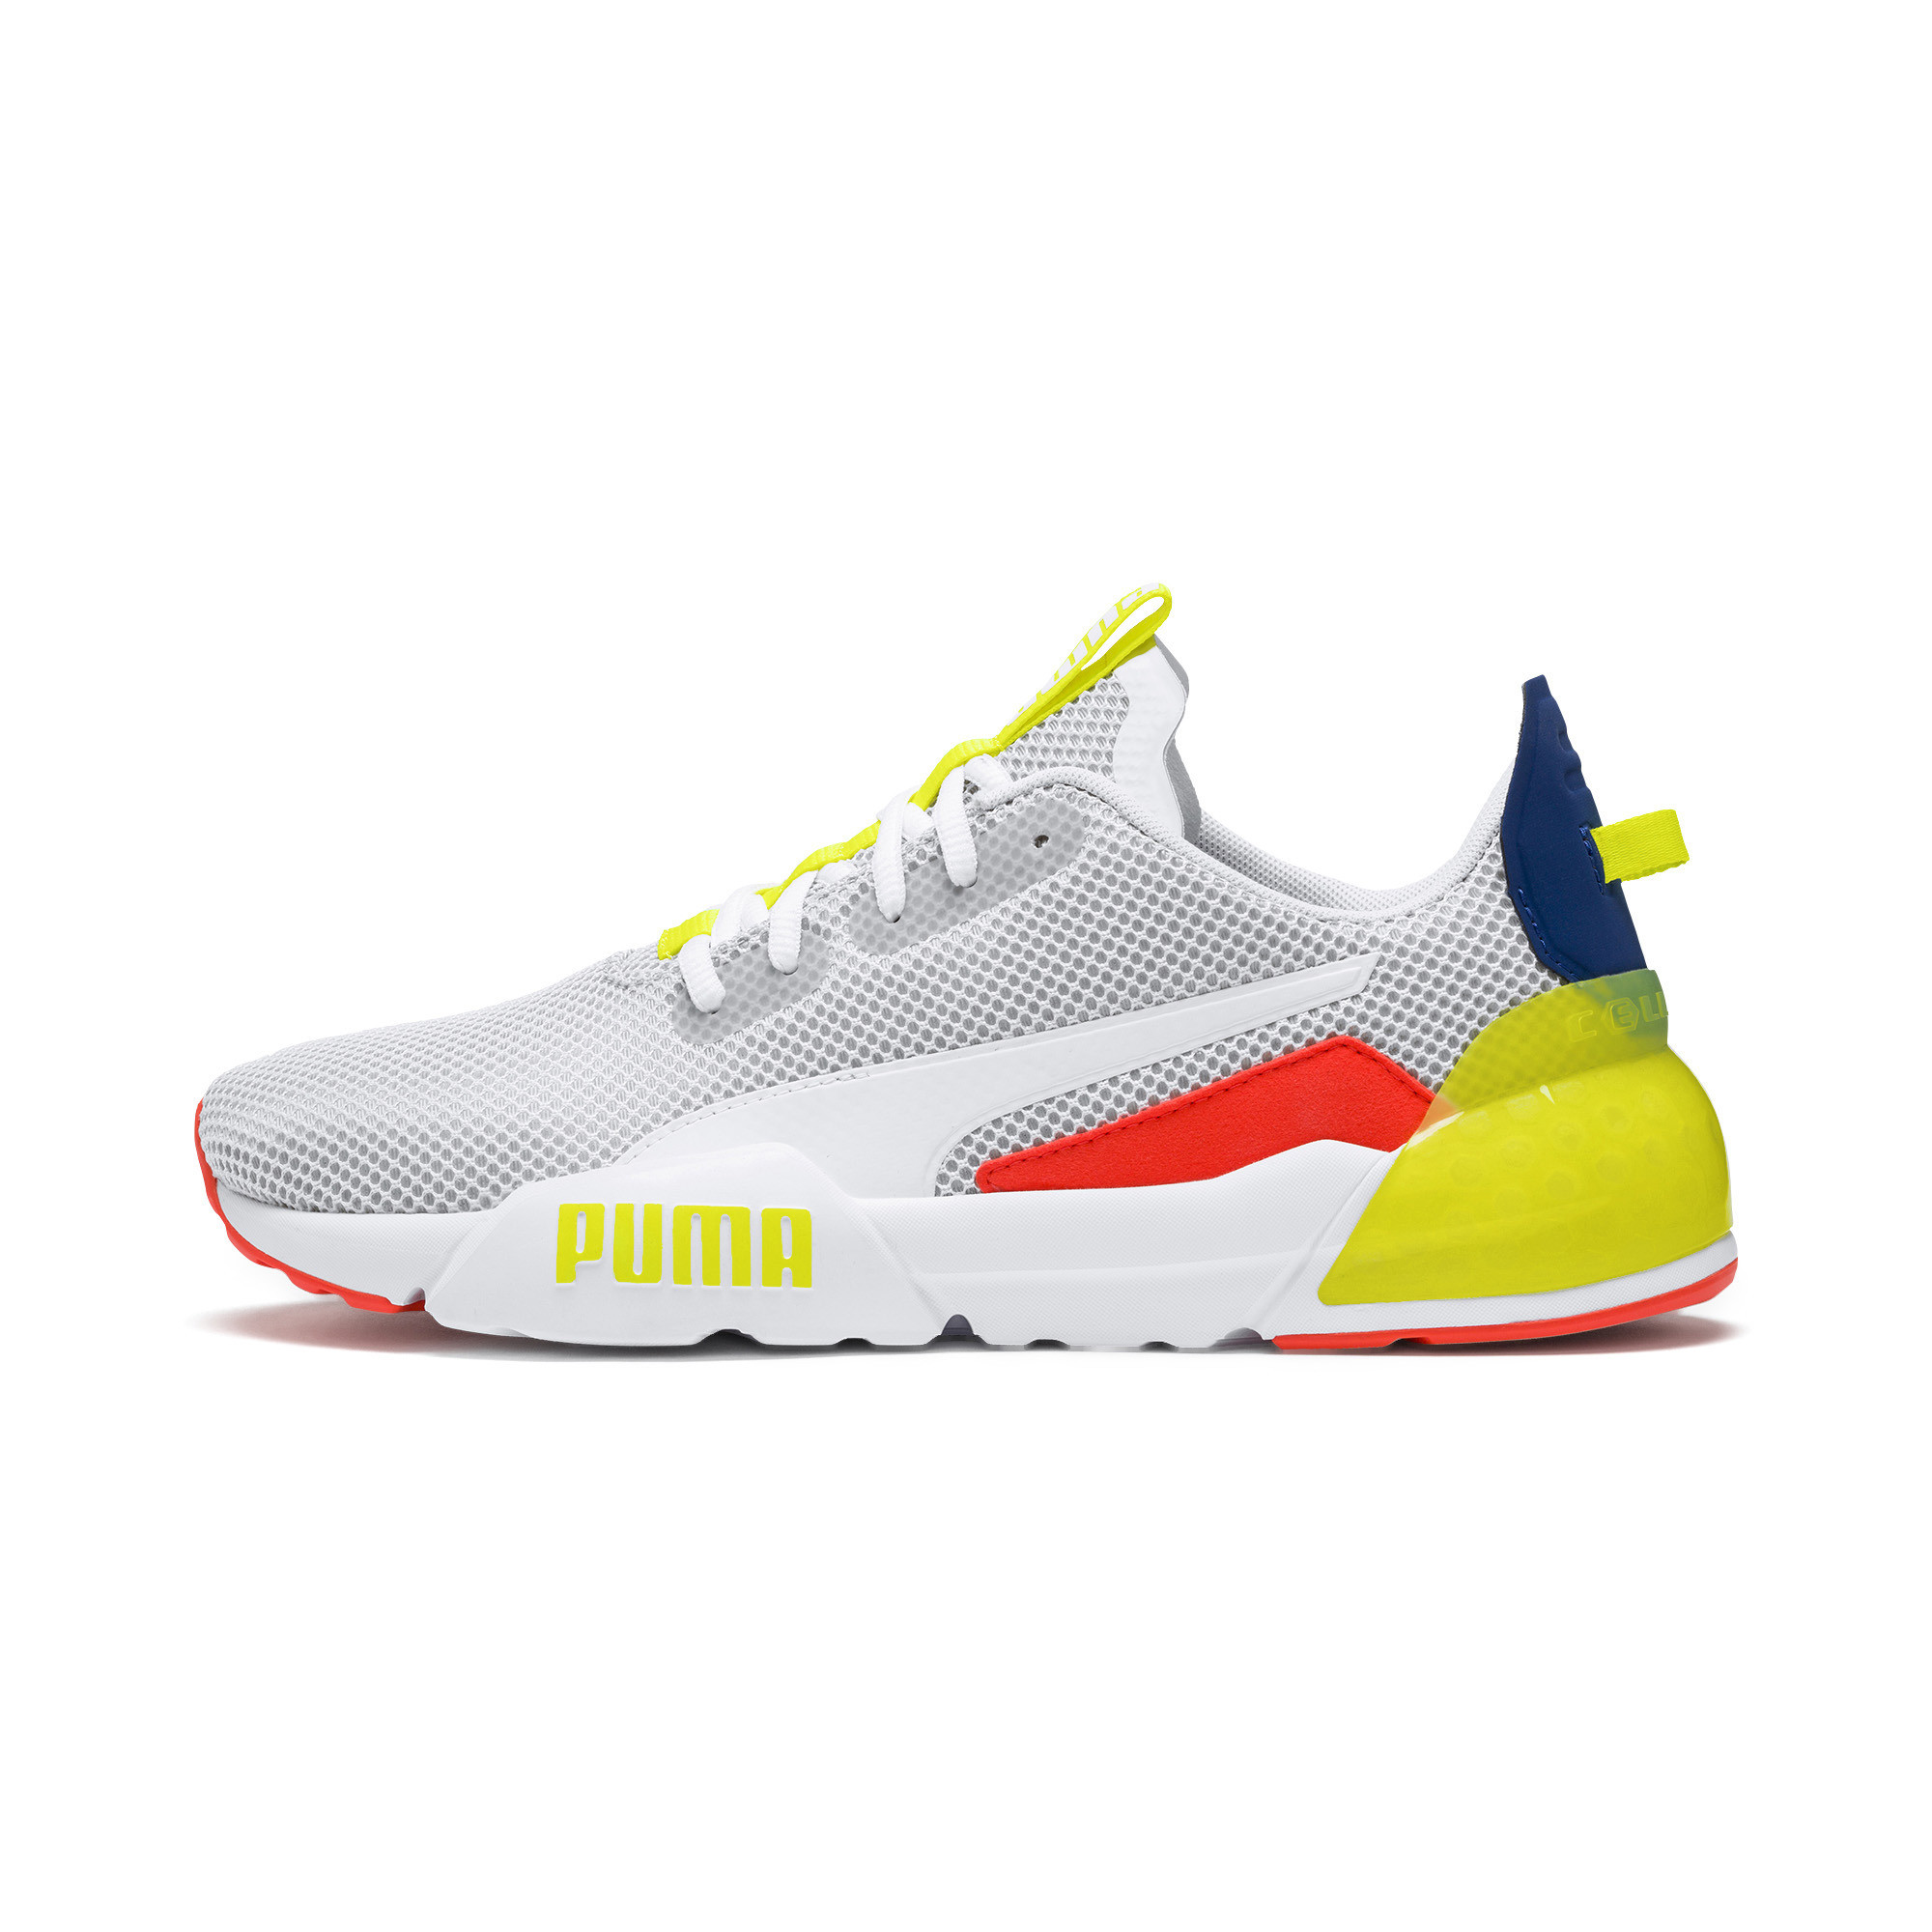 PUMA-Men-039-s-CELL-Phase-Training-Shoes thumbnail 4